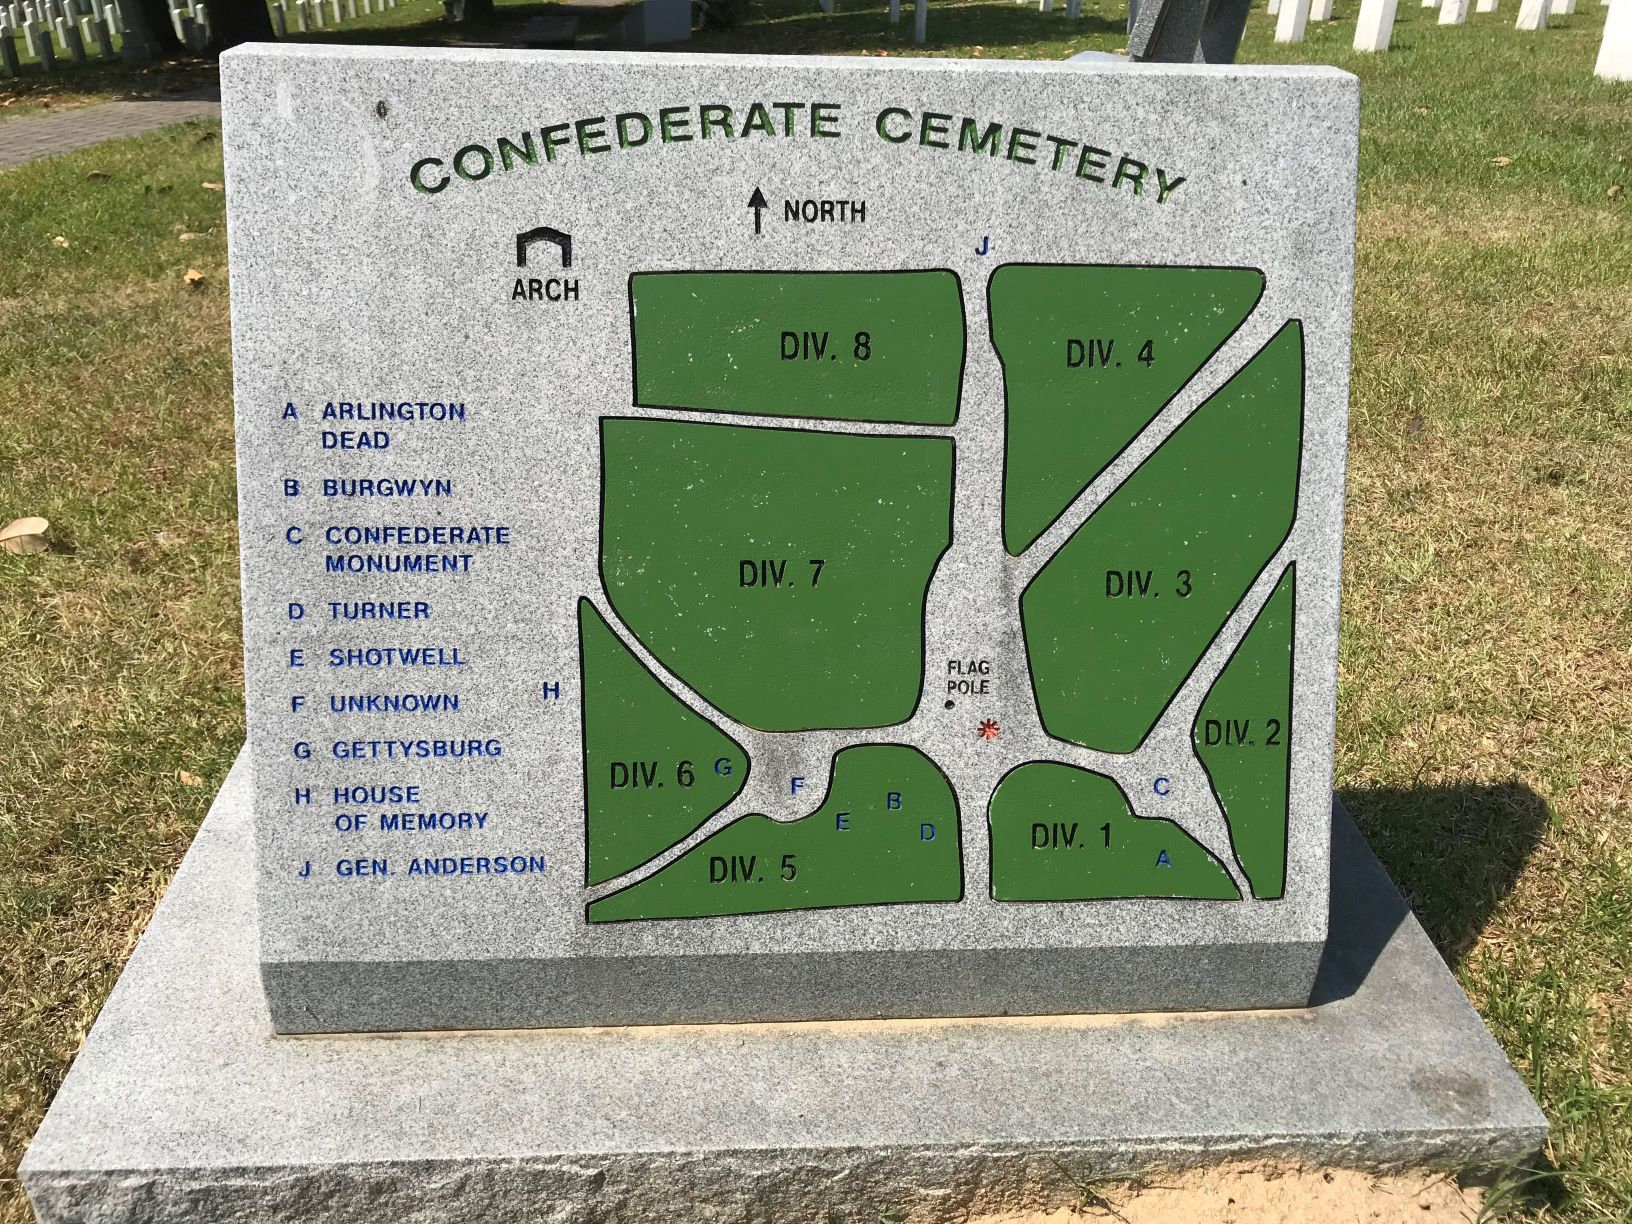 A map of the 8 divisions of the Confederate Cemetery.